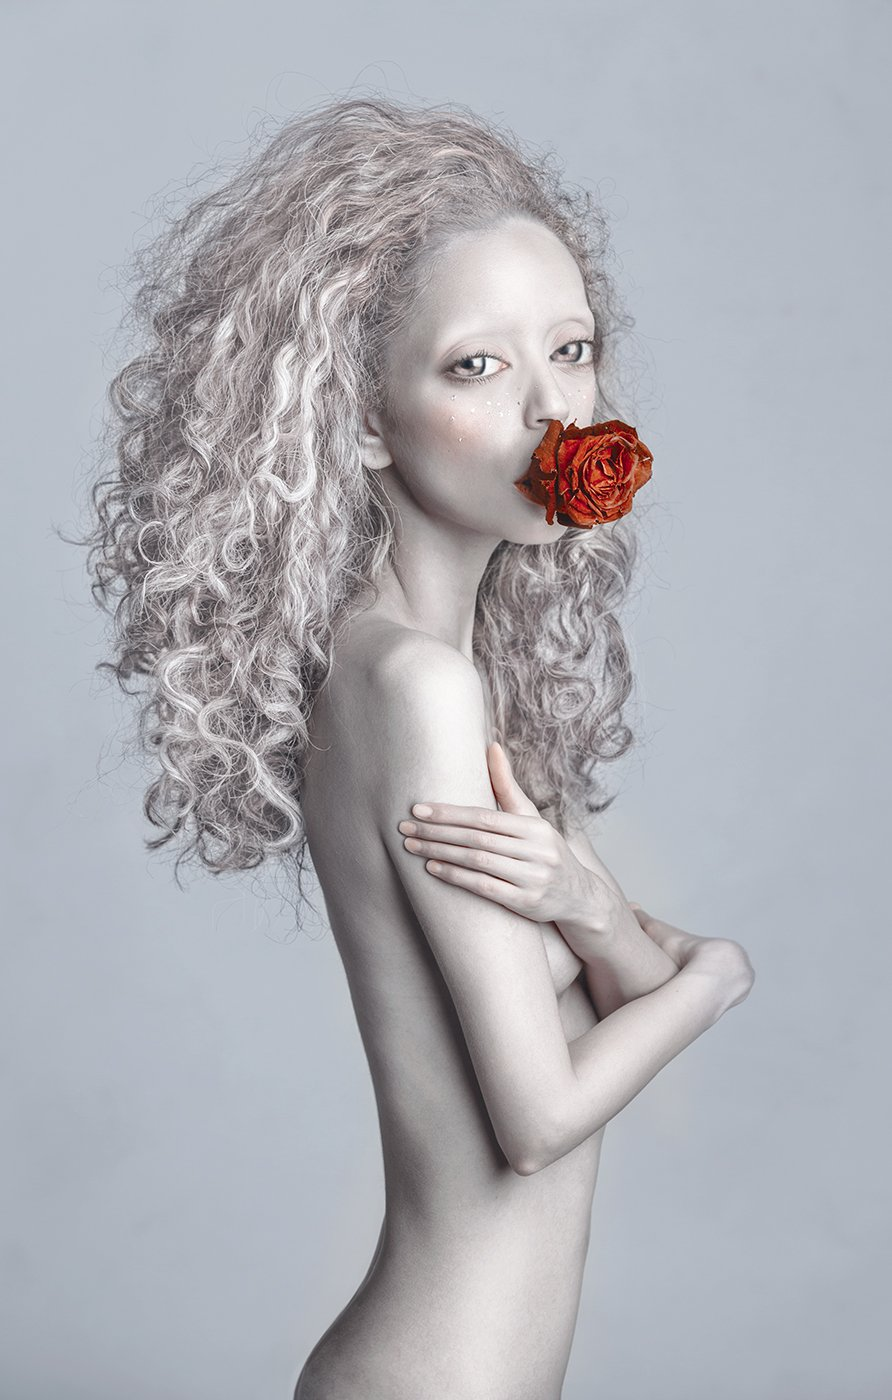 photoshop, red and white, Dasha Chegarovskaya